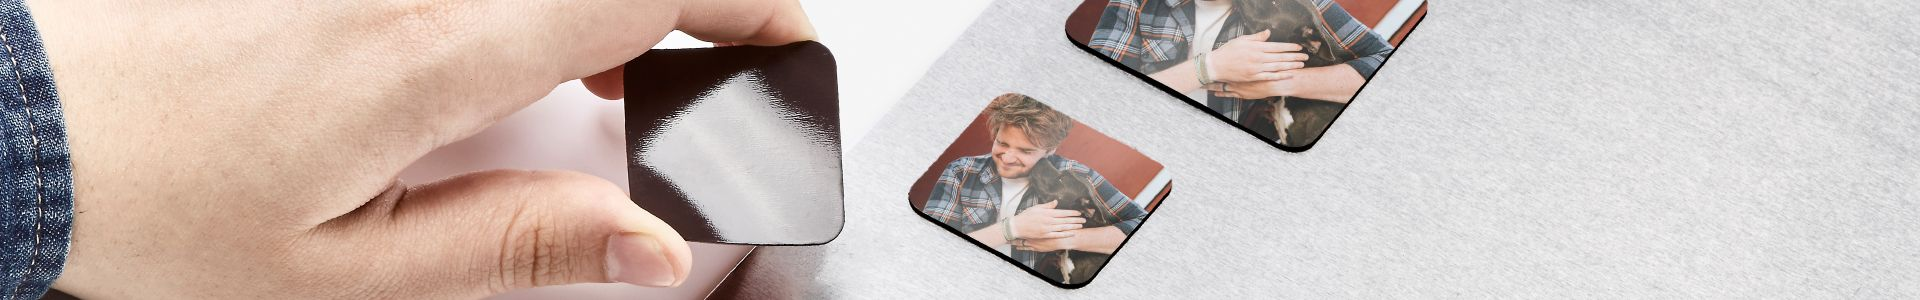 Photo magnets | Camaloon